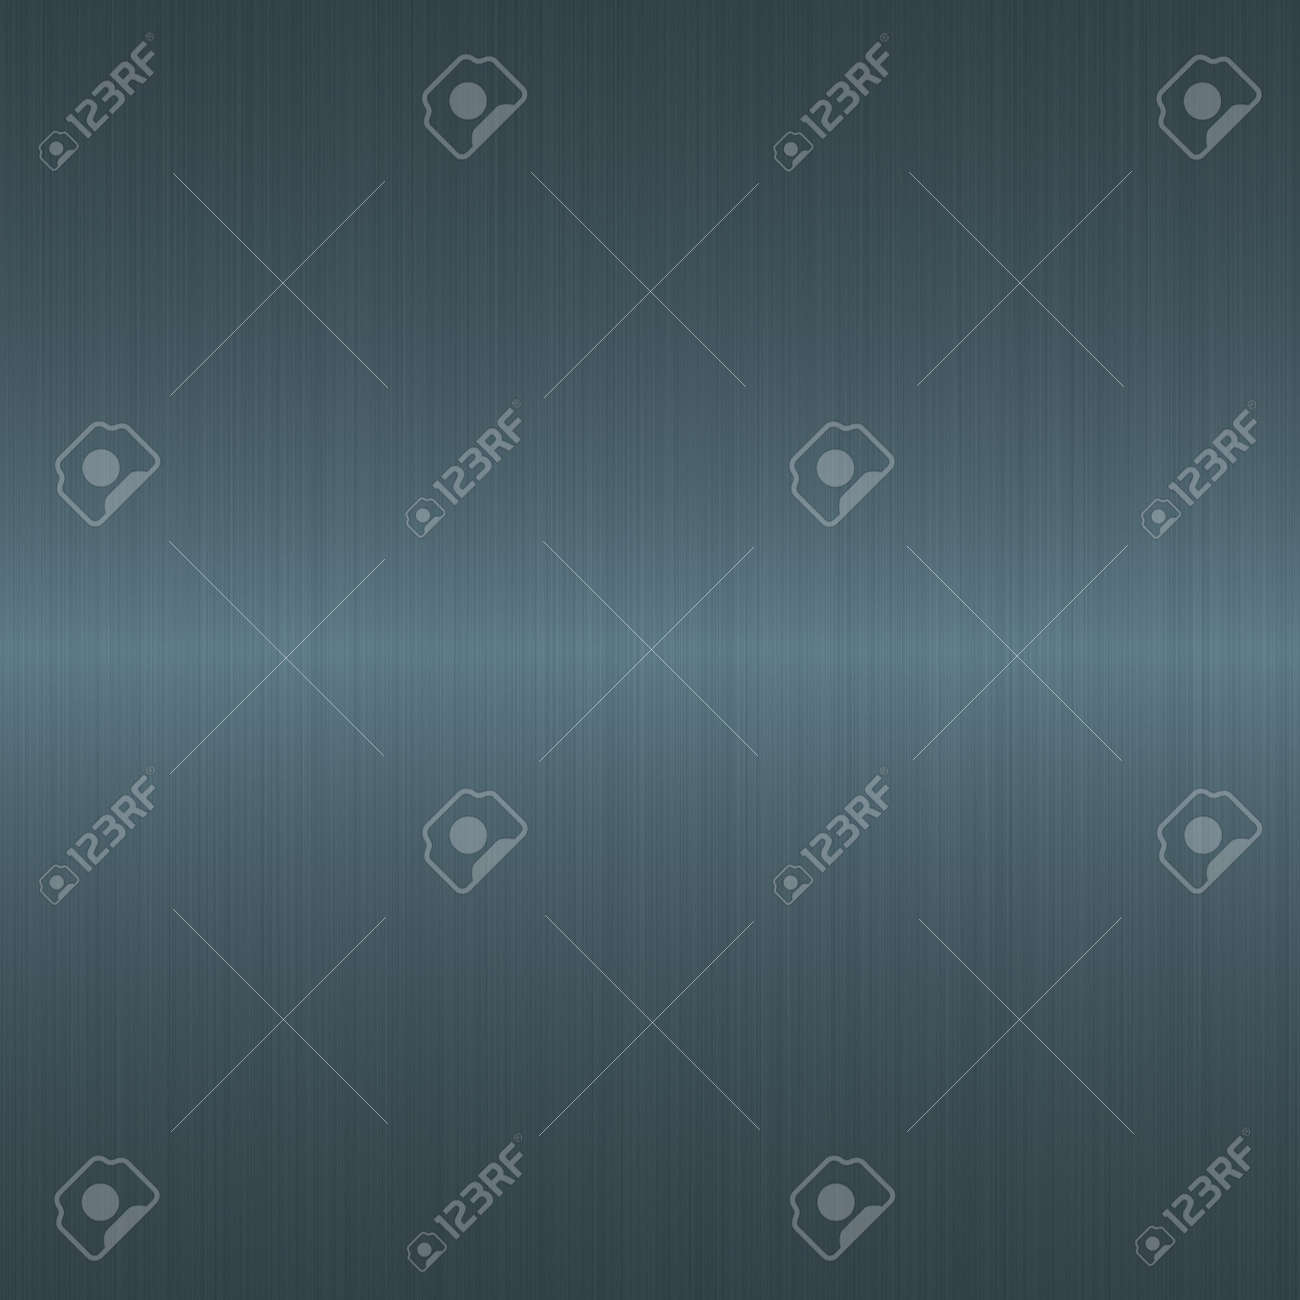 brushed dark blue silver metallic background with central highlight Stock Photo - 3089906